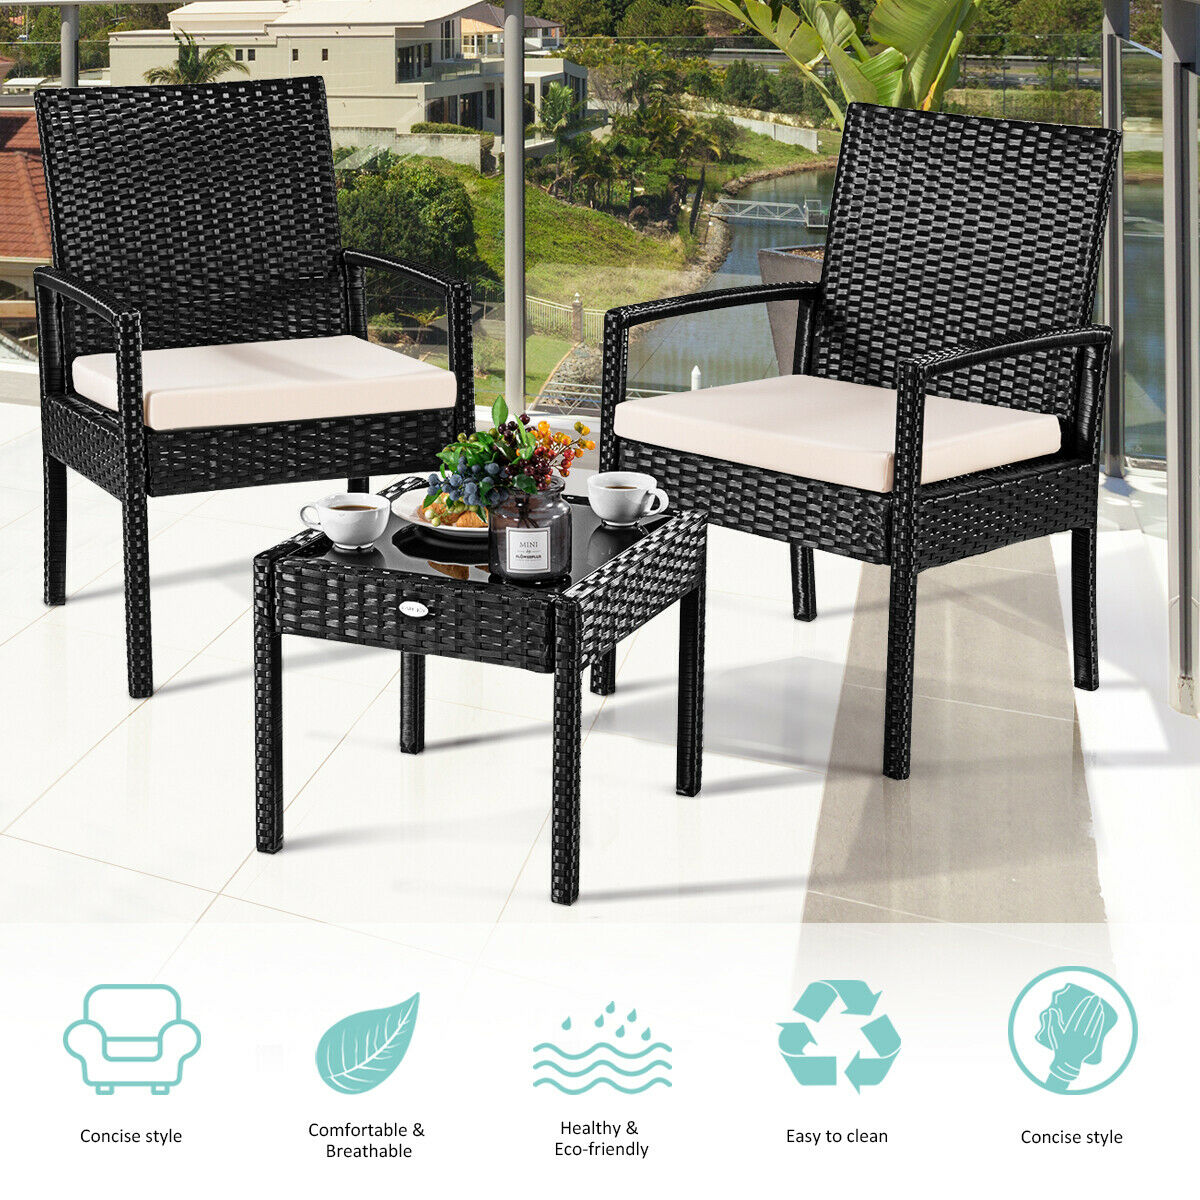 Delicieux Costway 3 PS Outdoor Rattan Patio Furniture Set Backyard Garden Furniture  Seat Cushioned